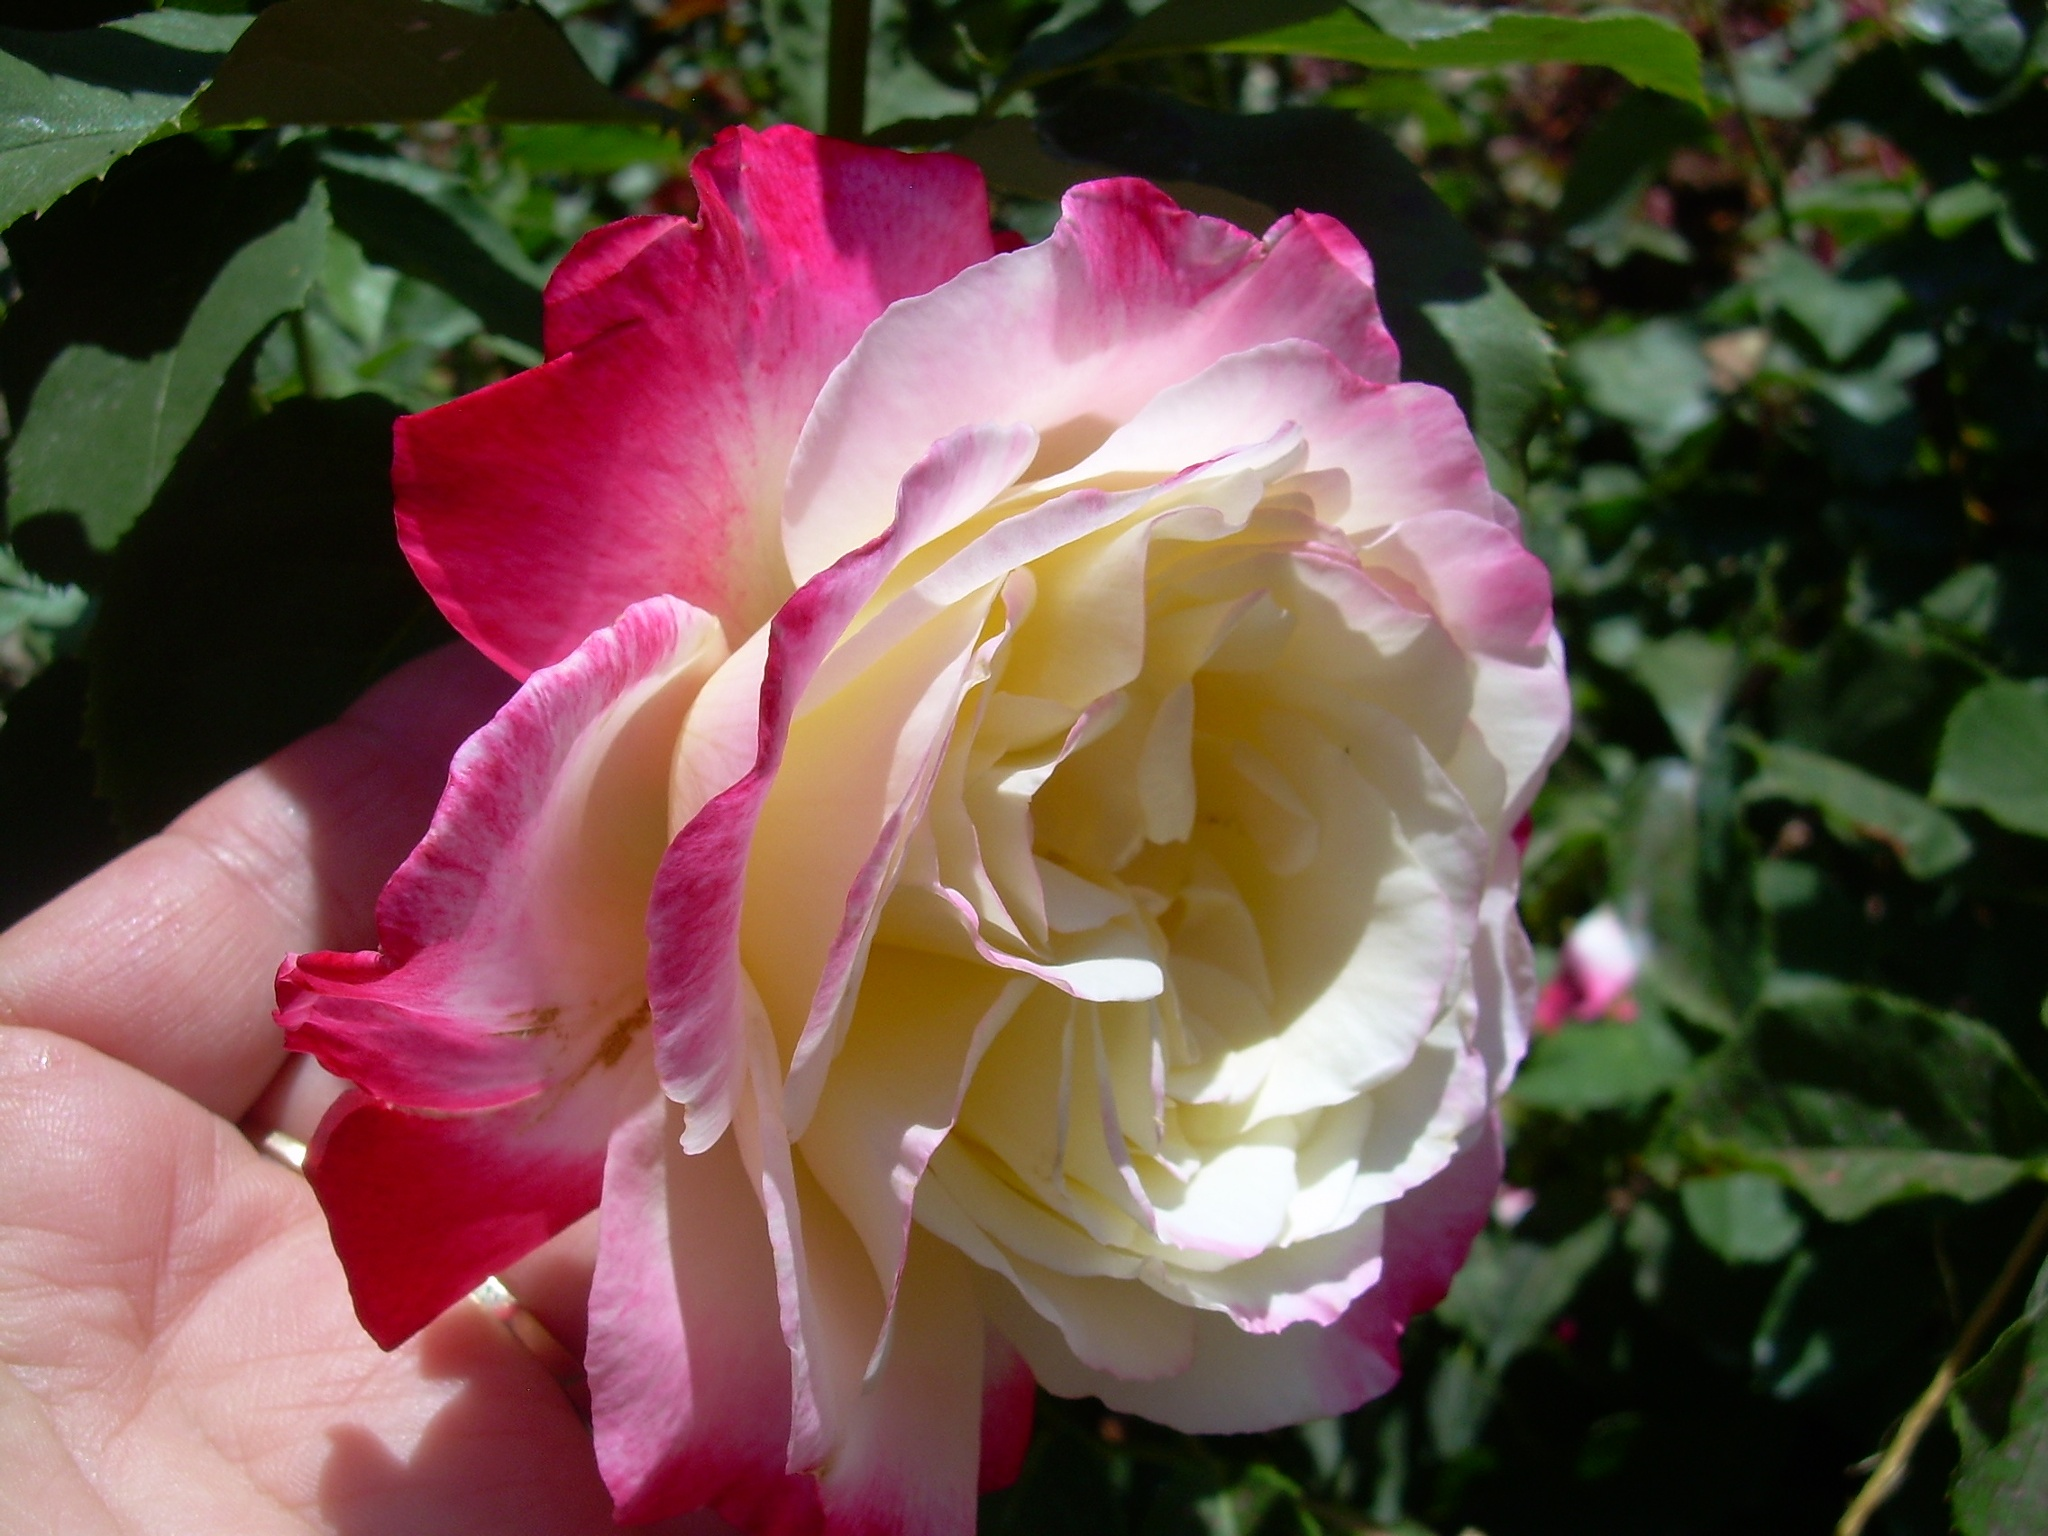 Pink and White Rose by marilyn wirtz